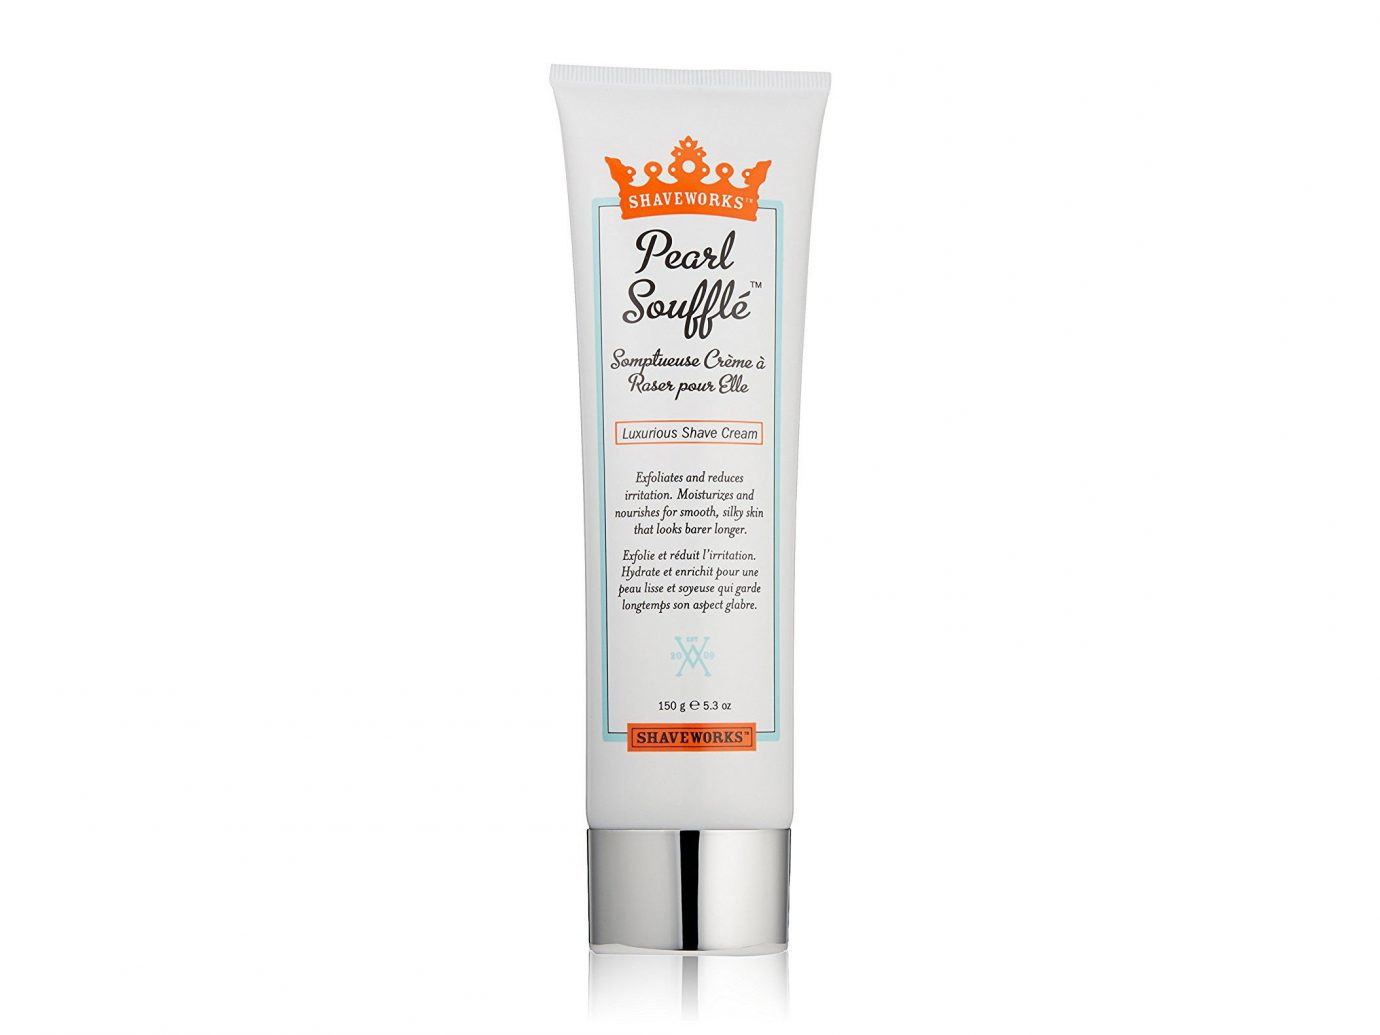 Travel Tips toiletry skin cream product skin lotion cream skin care hand material